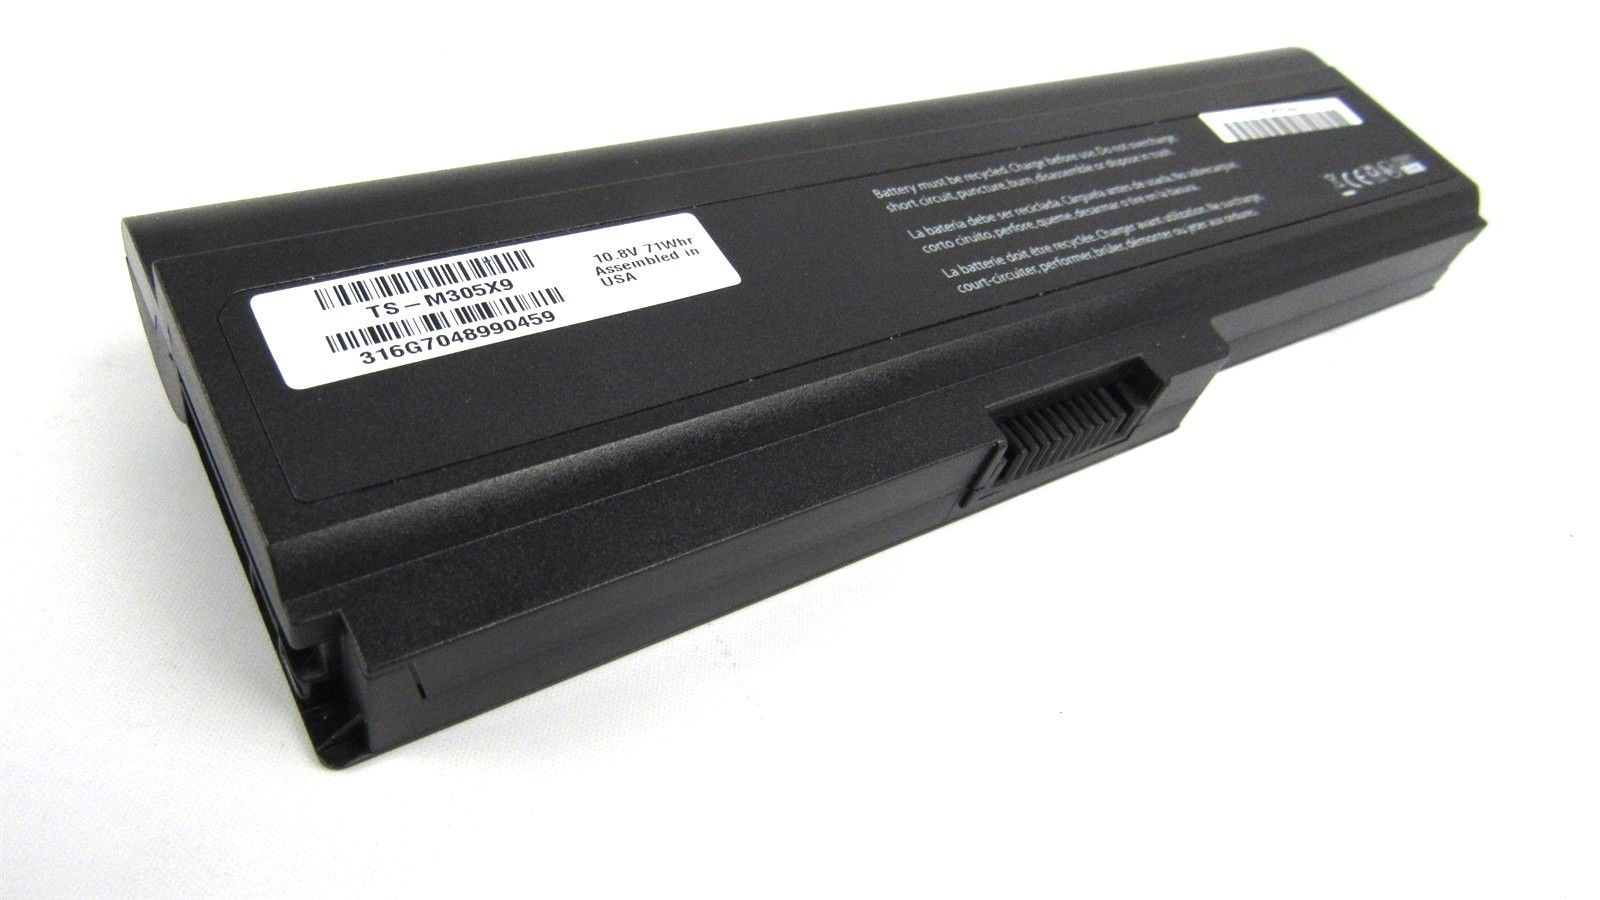 Battery for Toshiba Satellite M300 M305 M305D U400 U405 10.8V 71Whr TS-M305X9